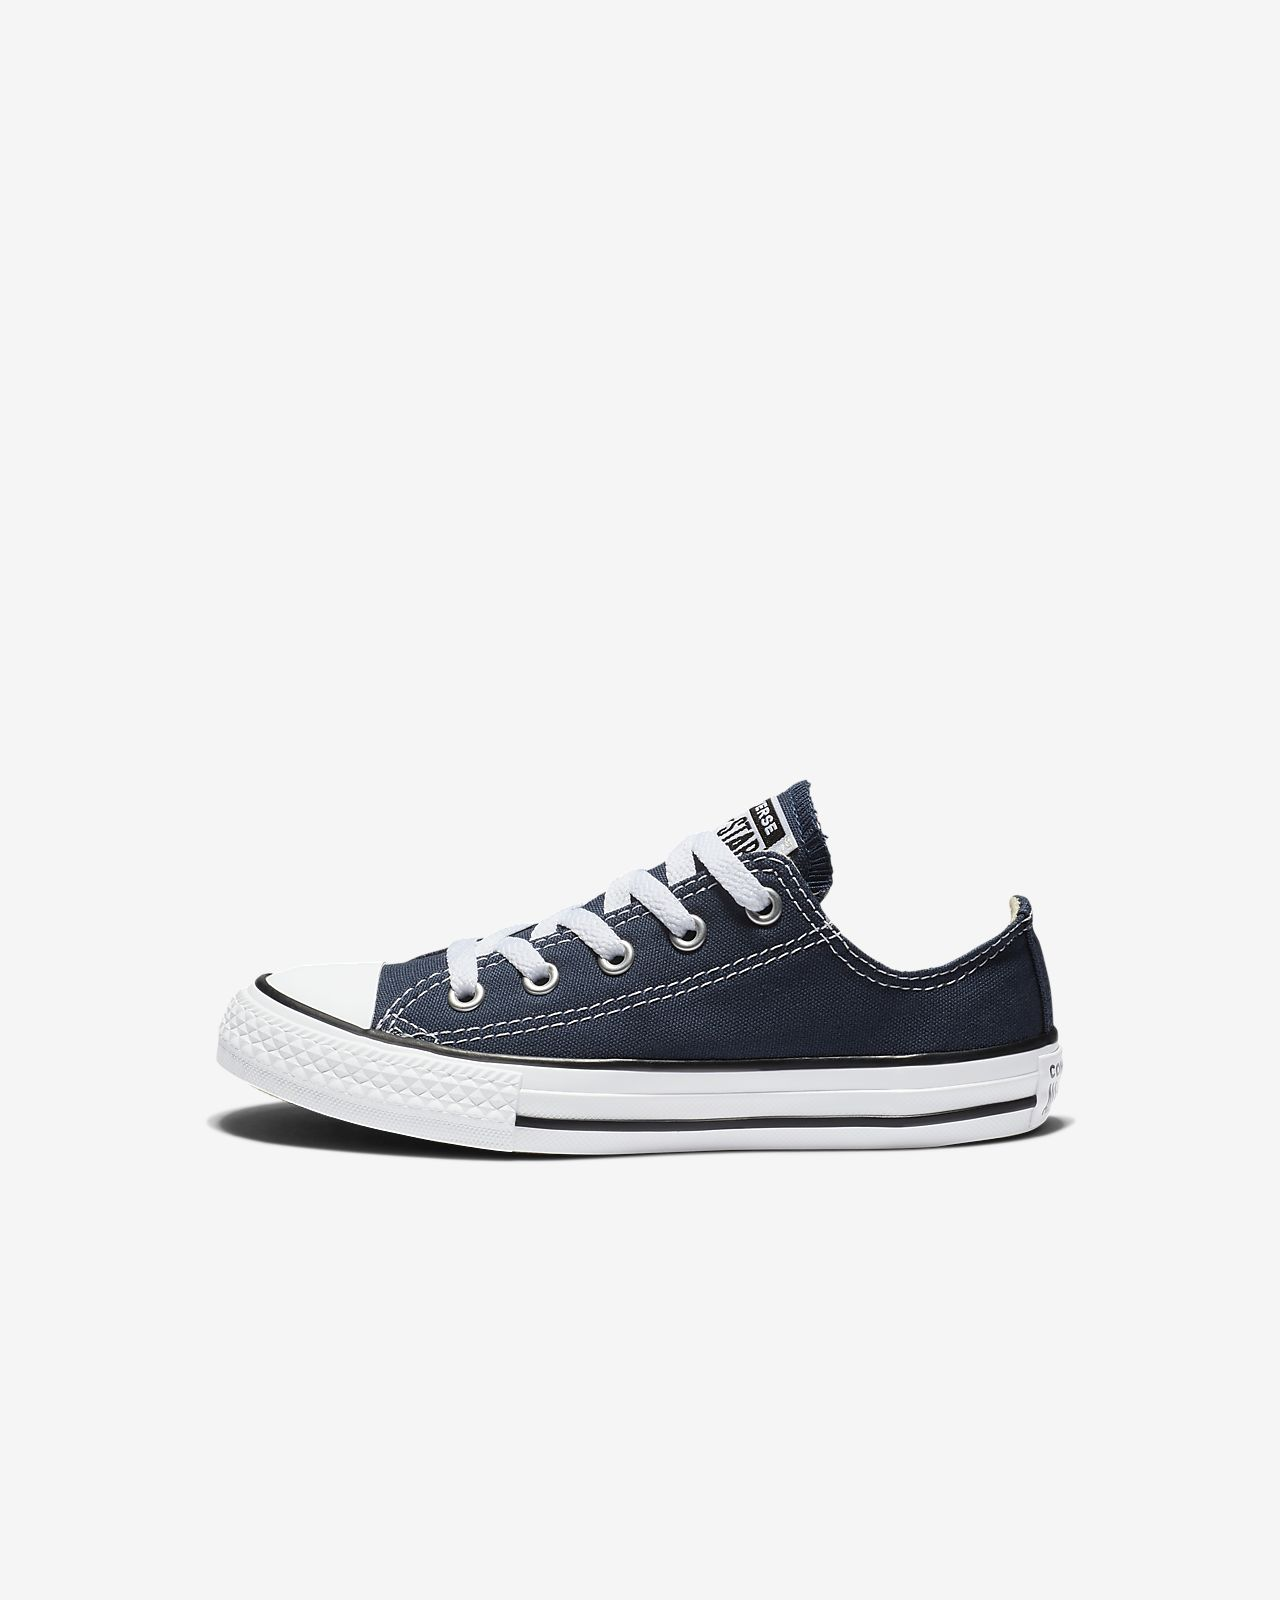 0eab101c7e8c Converse Chuck Taylor All Star Low Top (10.5c-3y) Little Kids  Shoe ...